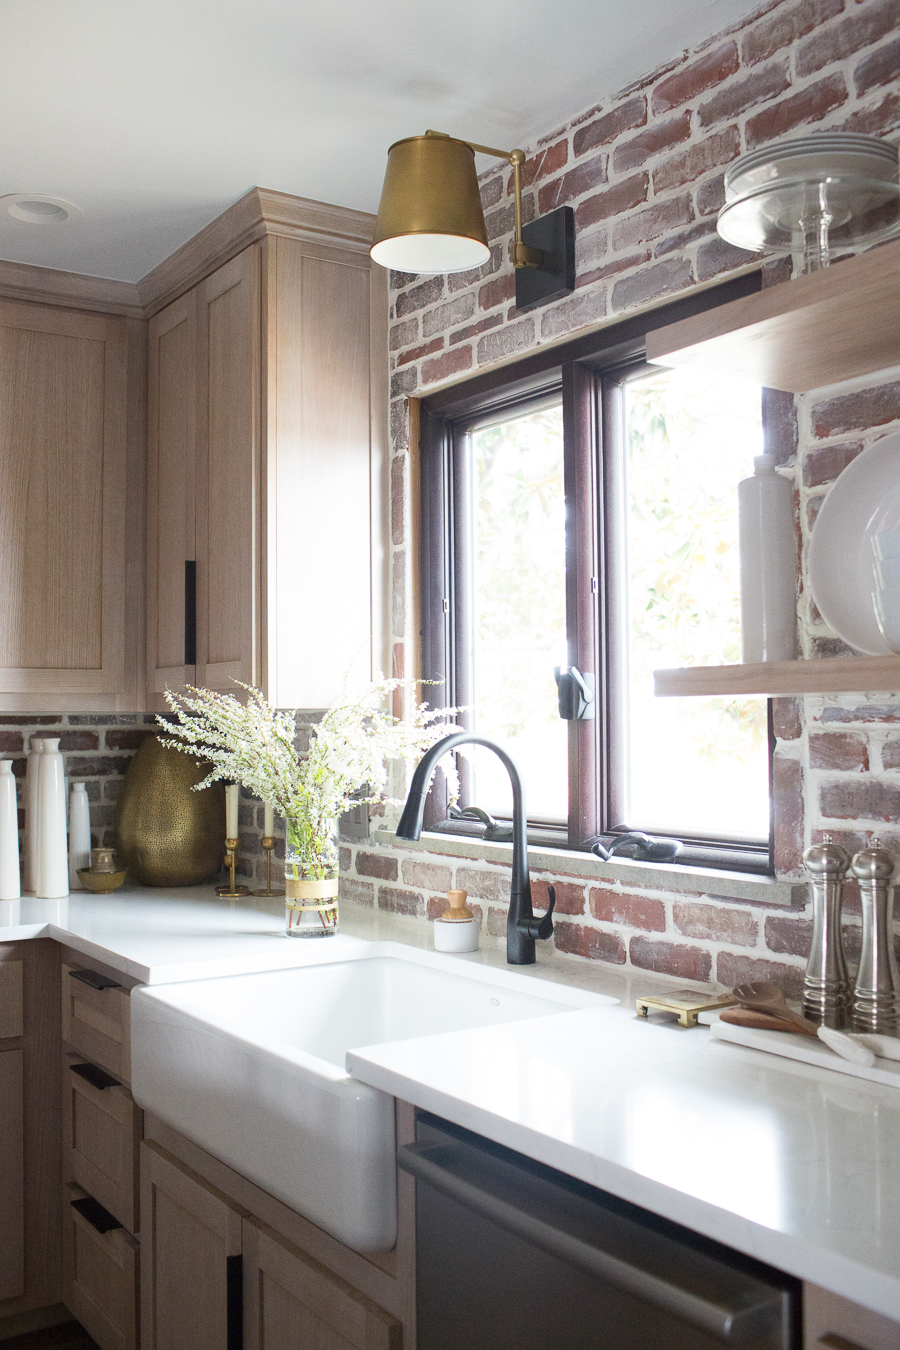 Image of: Cc And Mike Kane Project Remodel Reveal Brick Kitchen Bacskplash With A White Farmhouse Sink And Black Faucet Rift Sawn White Oak Cabinets With Black Hardware 7 Cc Mike